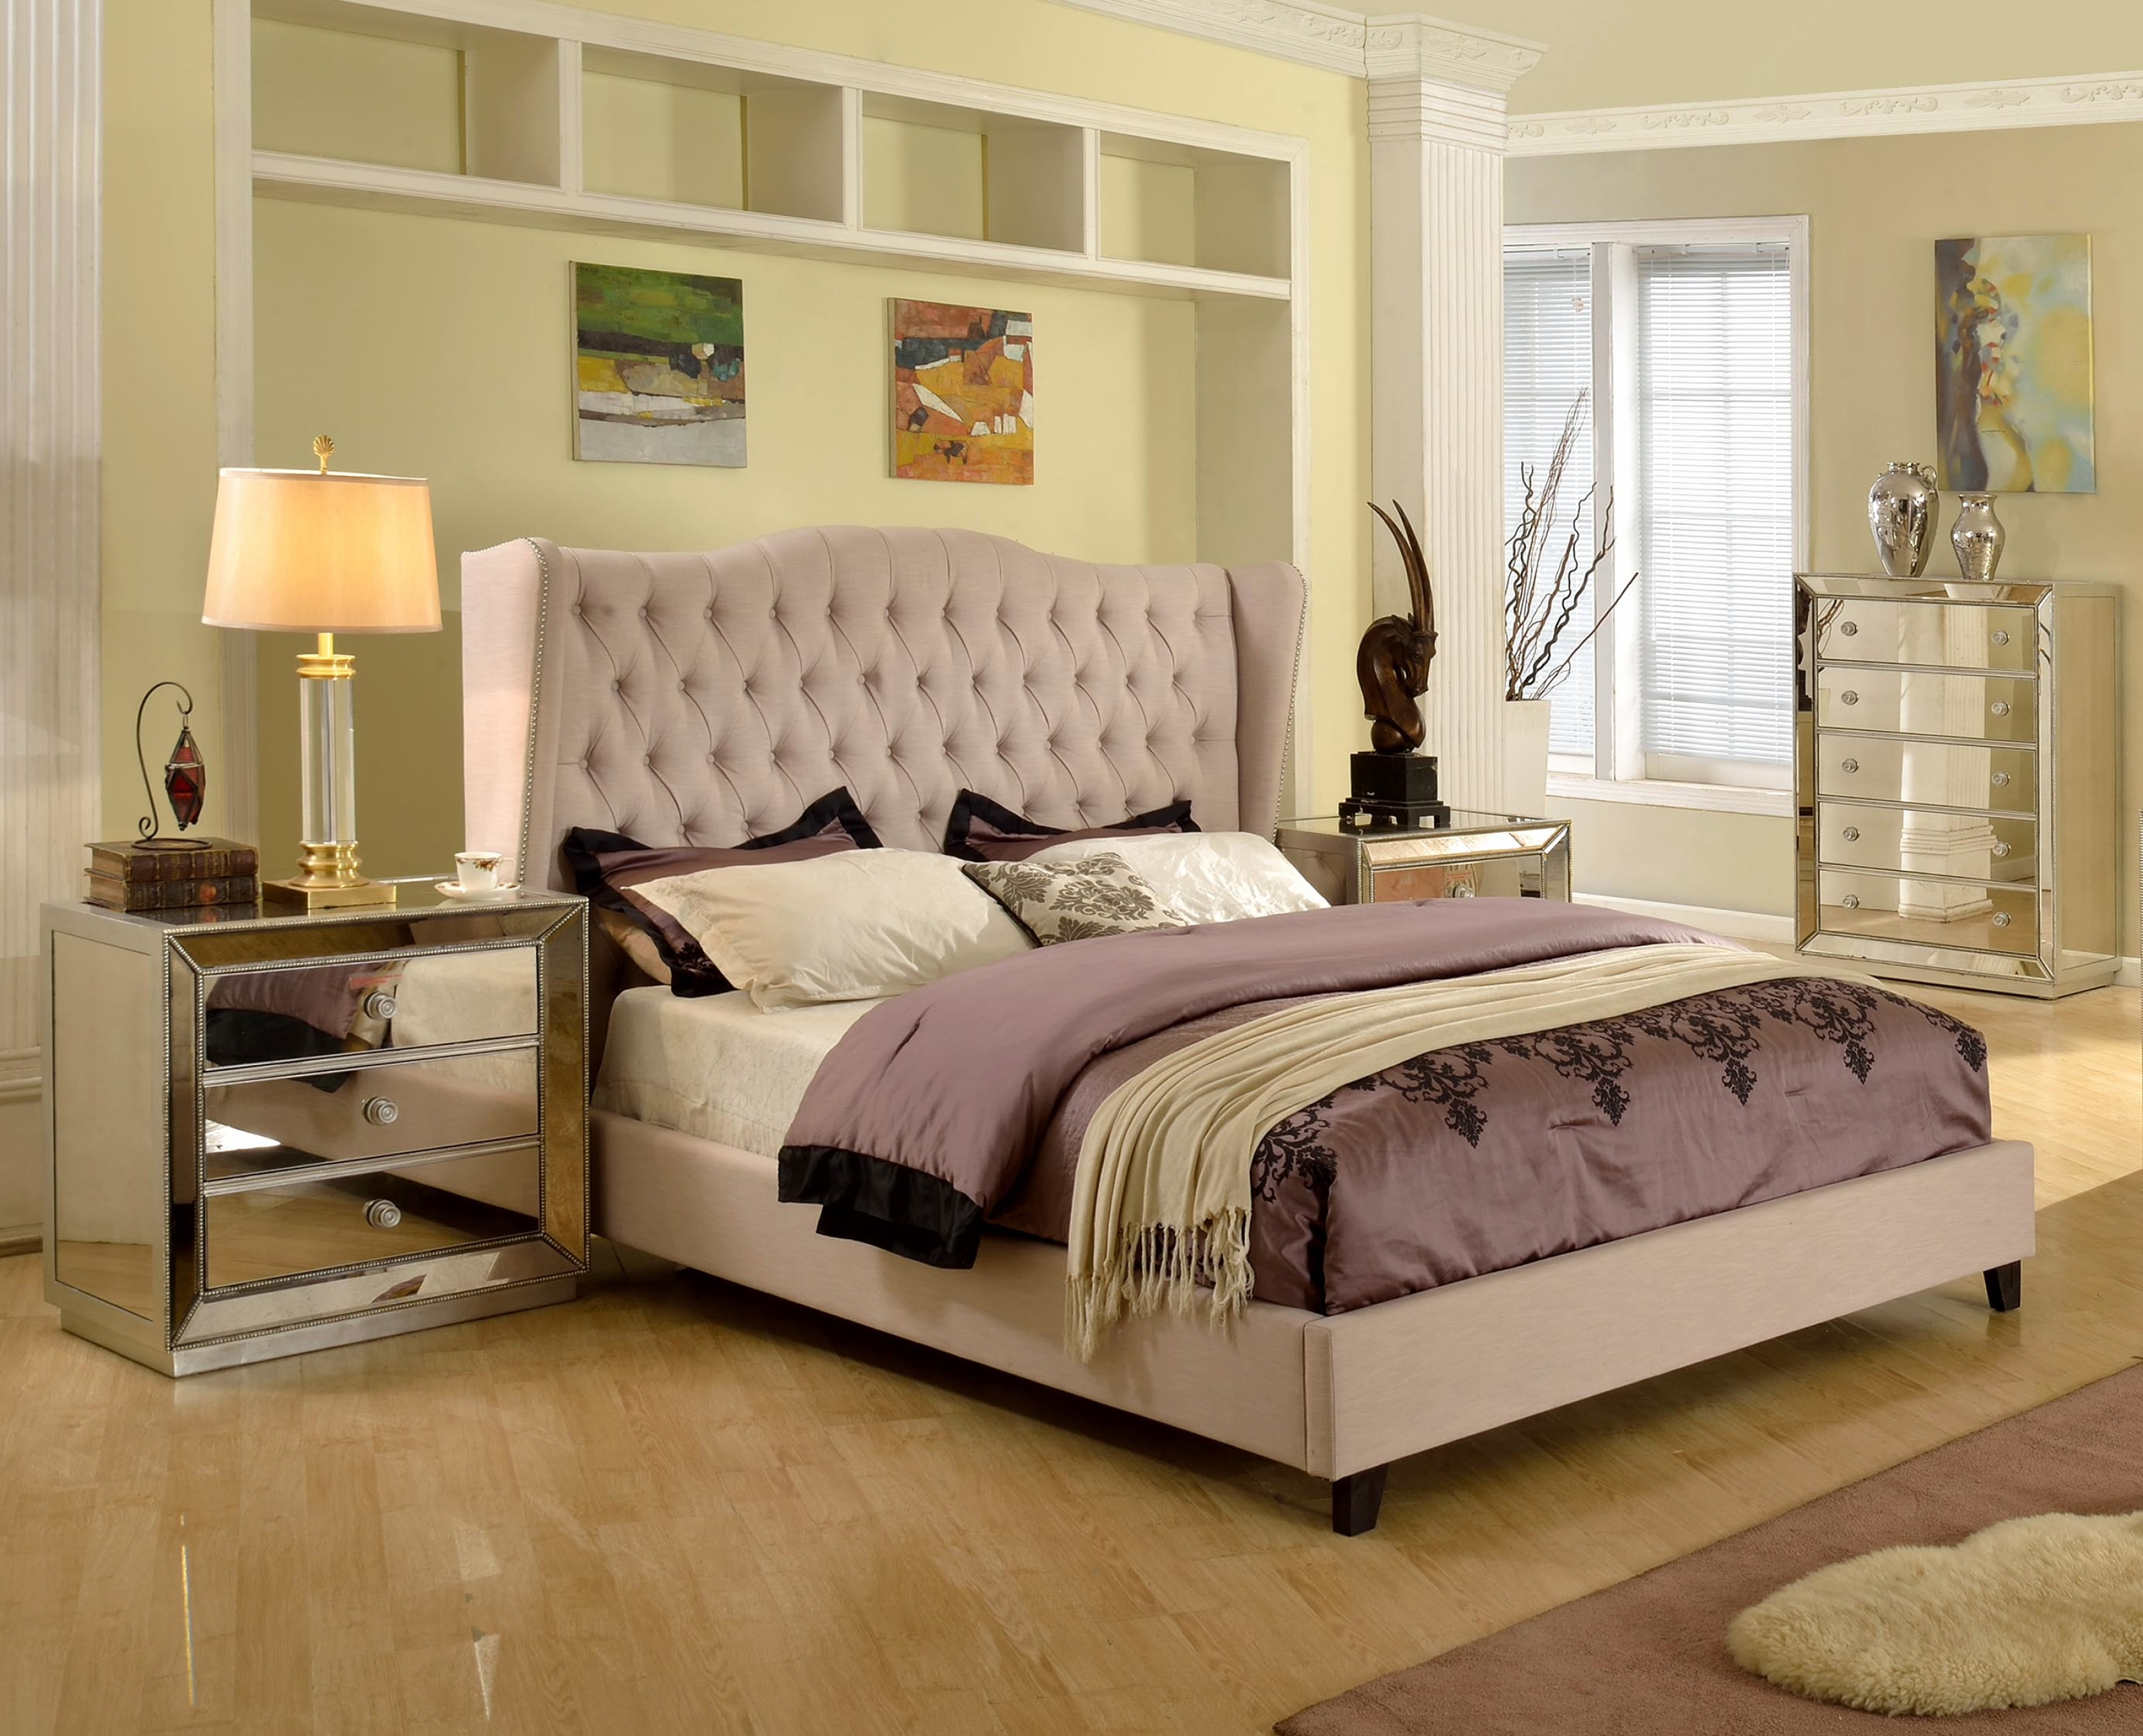 Contemporary Taupe Est.KIng Size Bedroom Bed | Hot Sectionals